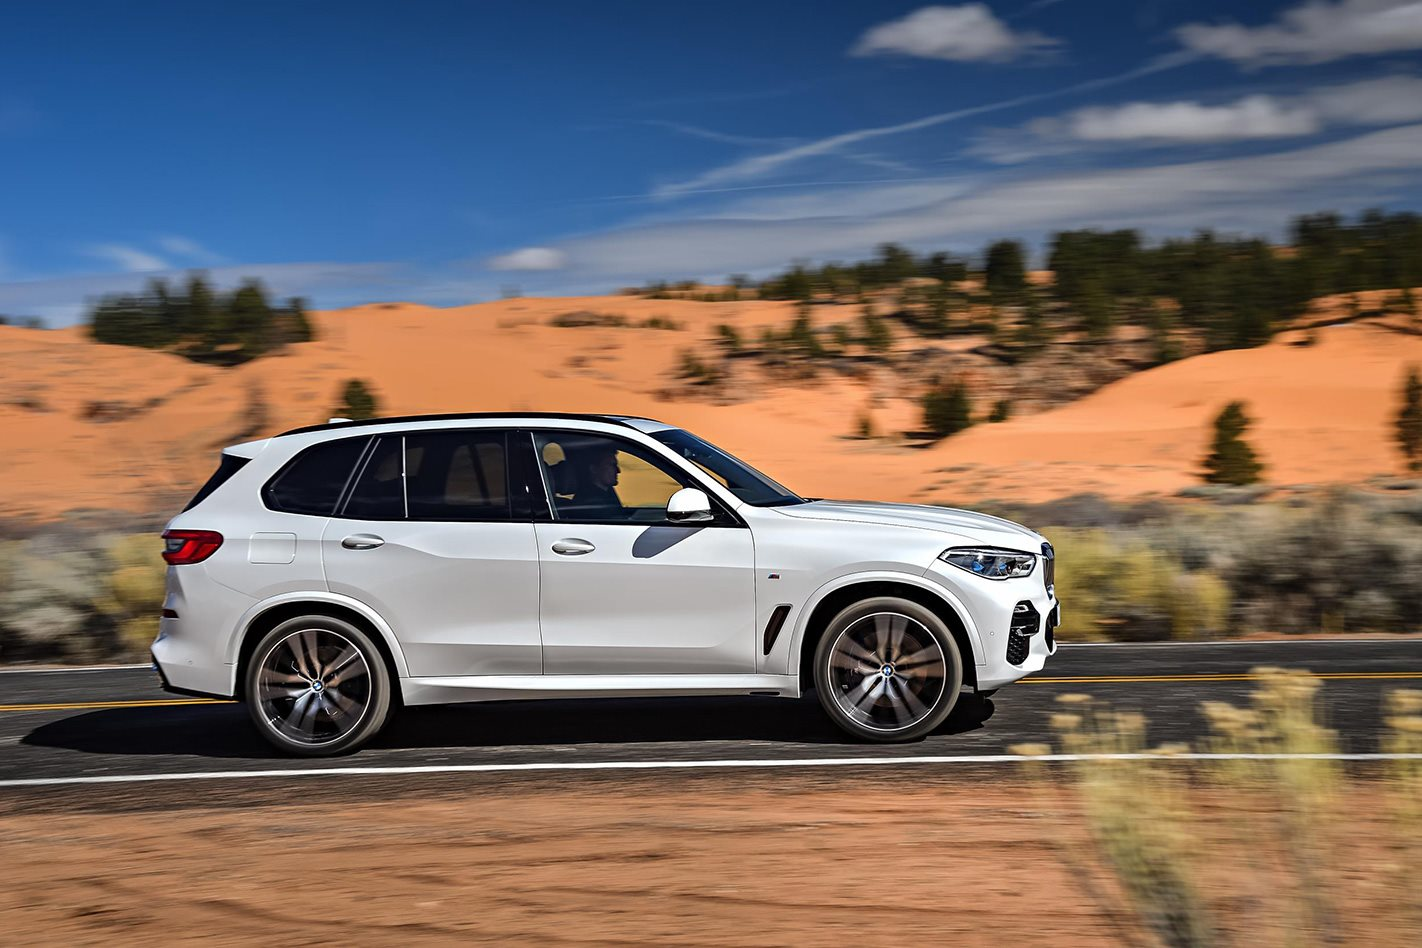 2019 Bmw X5 Pricing And Features